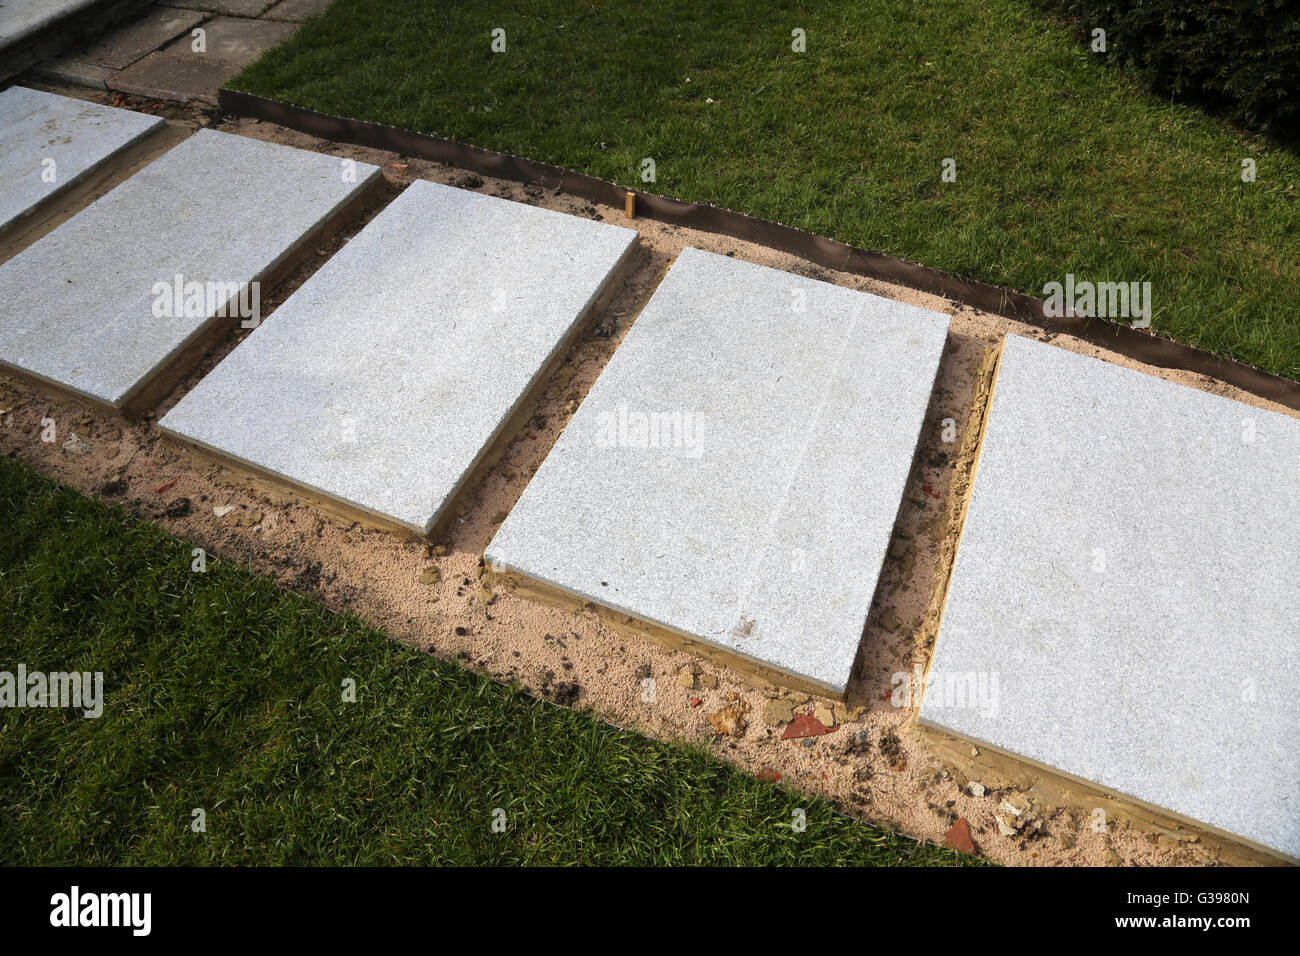 Great Laying New Garden Path New Concrete Slabs Surrey England